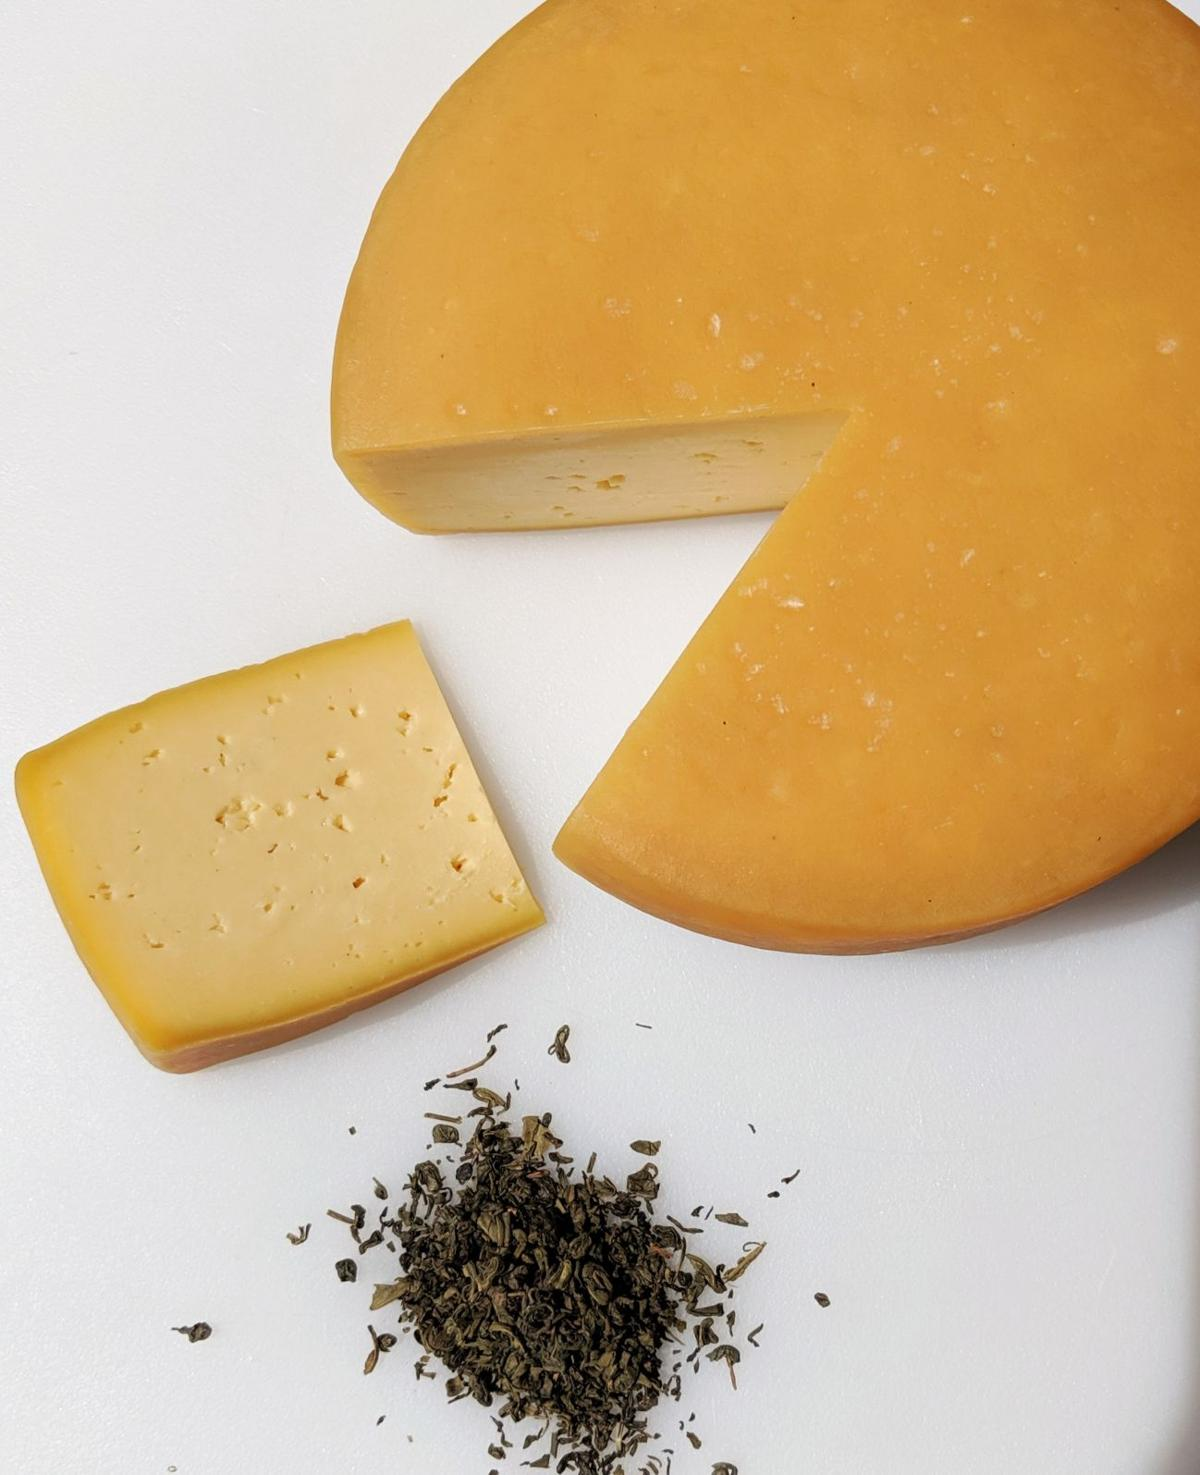 Caciotta, a seasonal cheese infused with smoked tea leaves, made fresh at Lira Rossa Artisan Cheese in Moulton.